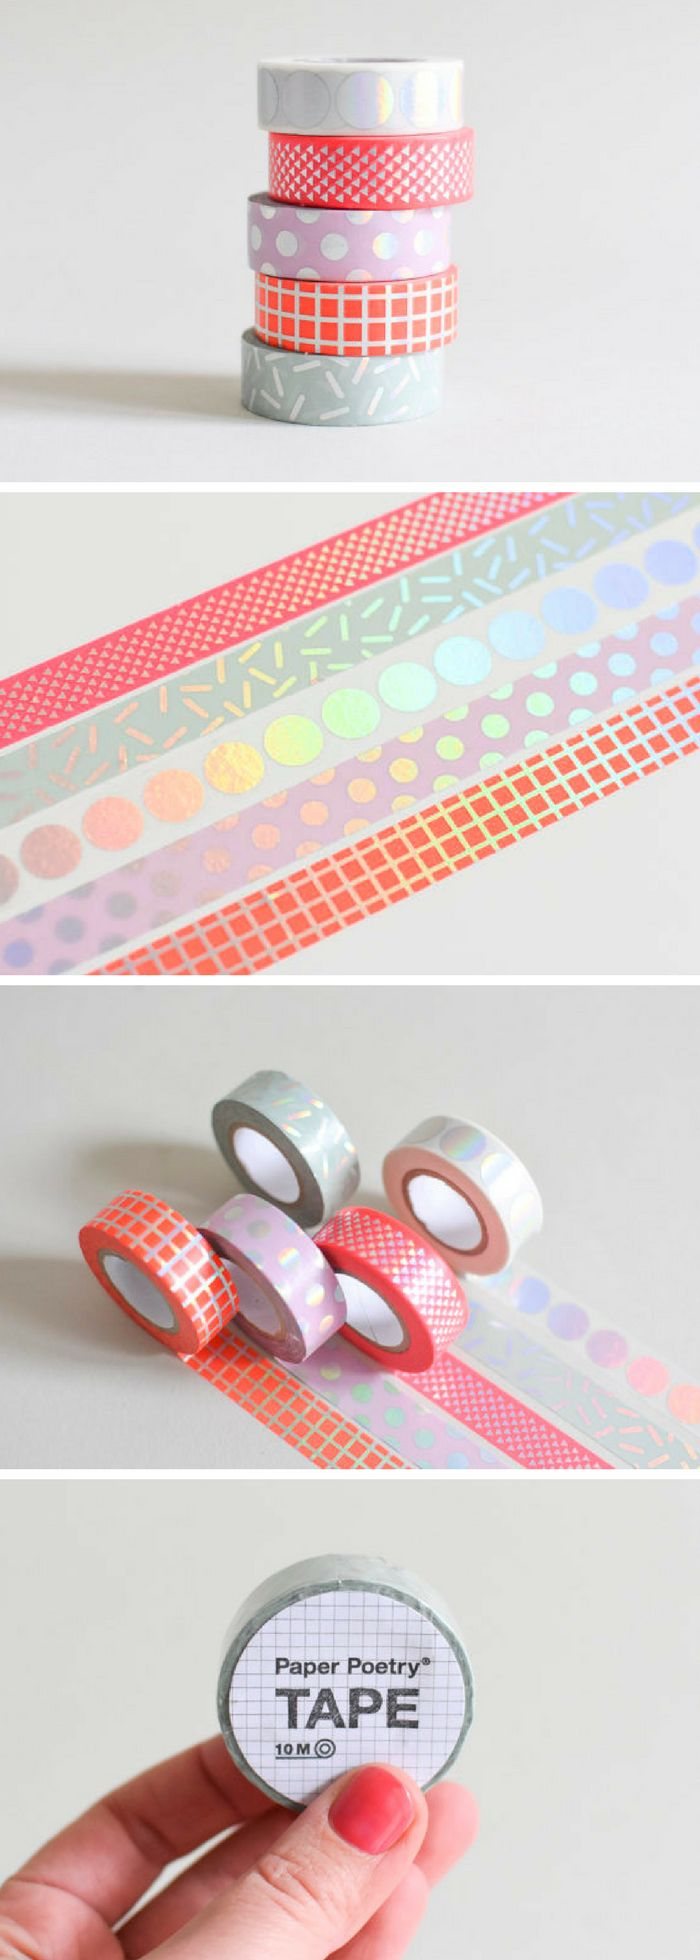 LOVE this washi tape. Never seen a holographic /shiny one before! Iridescent masking tape in 5 colors Stylish washi tape that will add a bit of glamour to your gifts. There are 5 patterns to choose from: A. Pink with dots B. White with large polka dots C. Red grid D. Aqua Confetti E. Hot Pink with triangles The listing is for one roll of tape with 10 meters / 11 yards. #ad #stationery #washi #crafts #etsyfinds